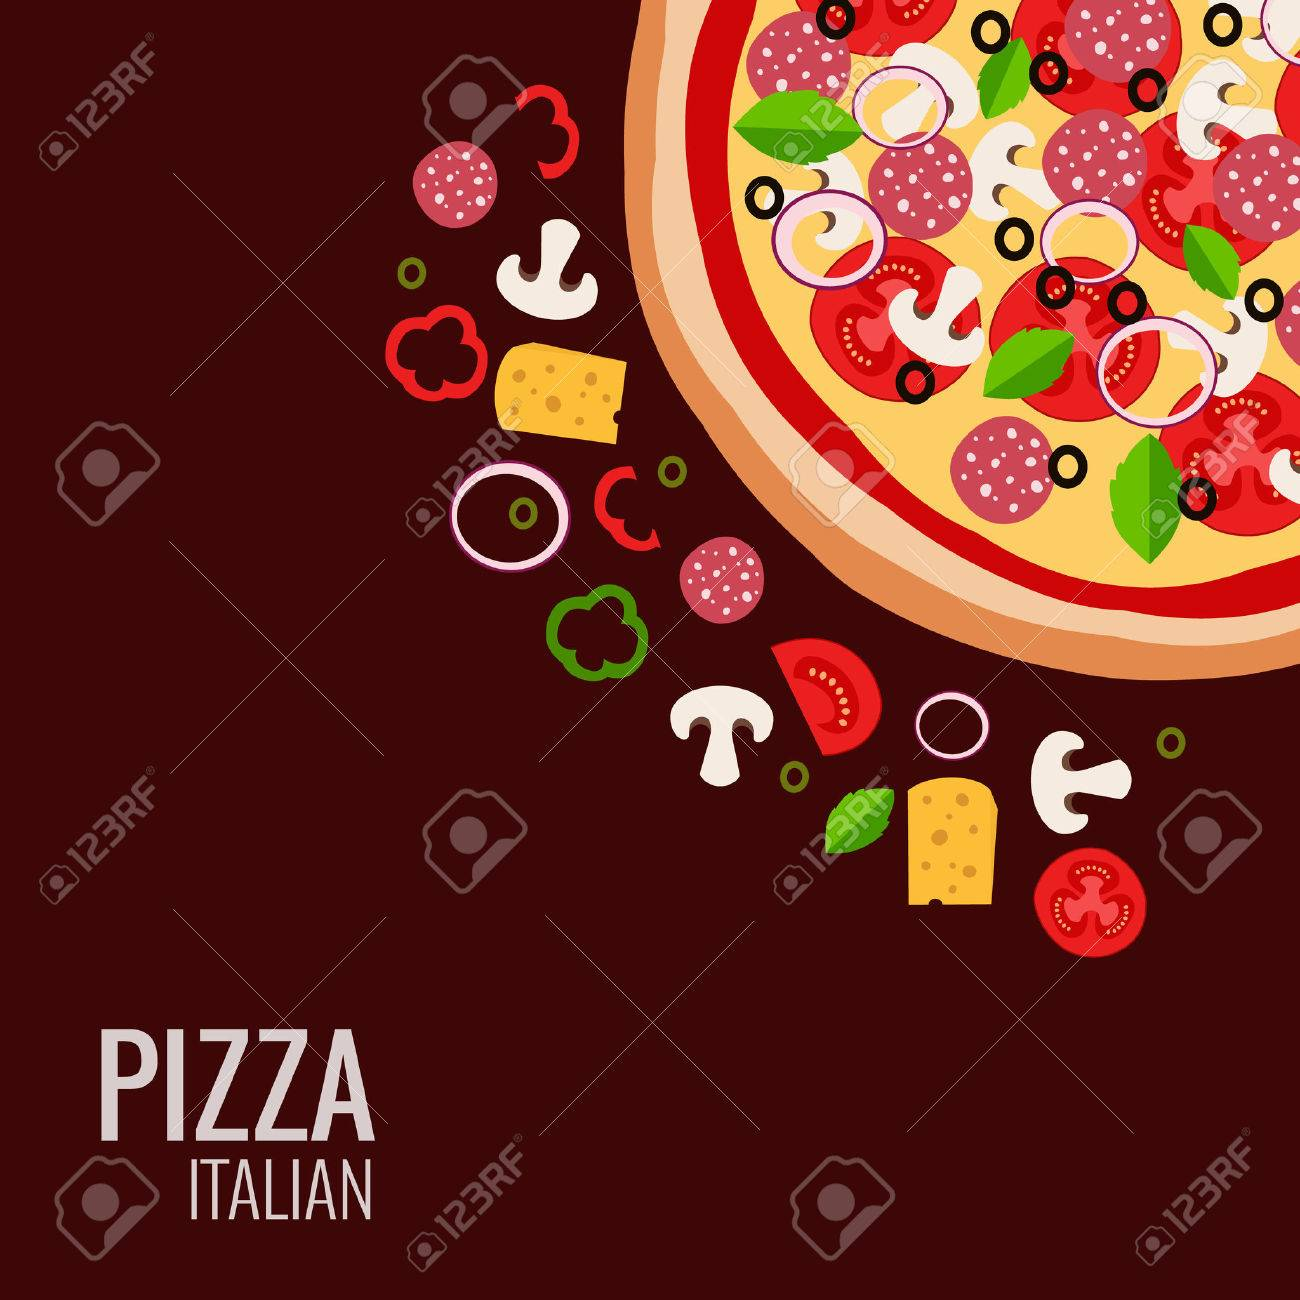 Pizza Icon Background Flat Design Illustration Of Ingredient For Menu